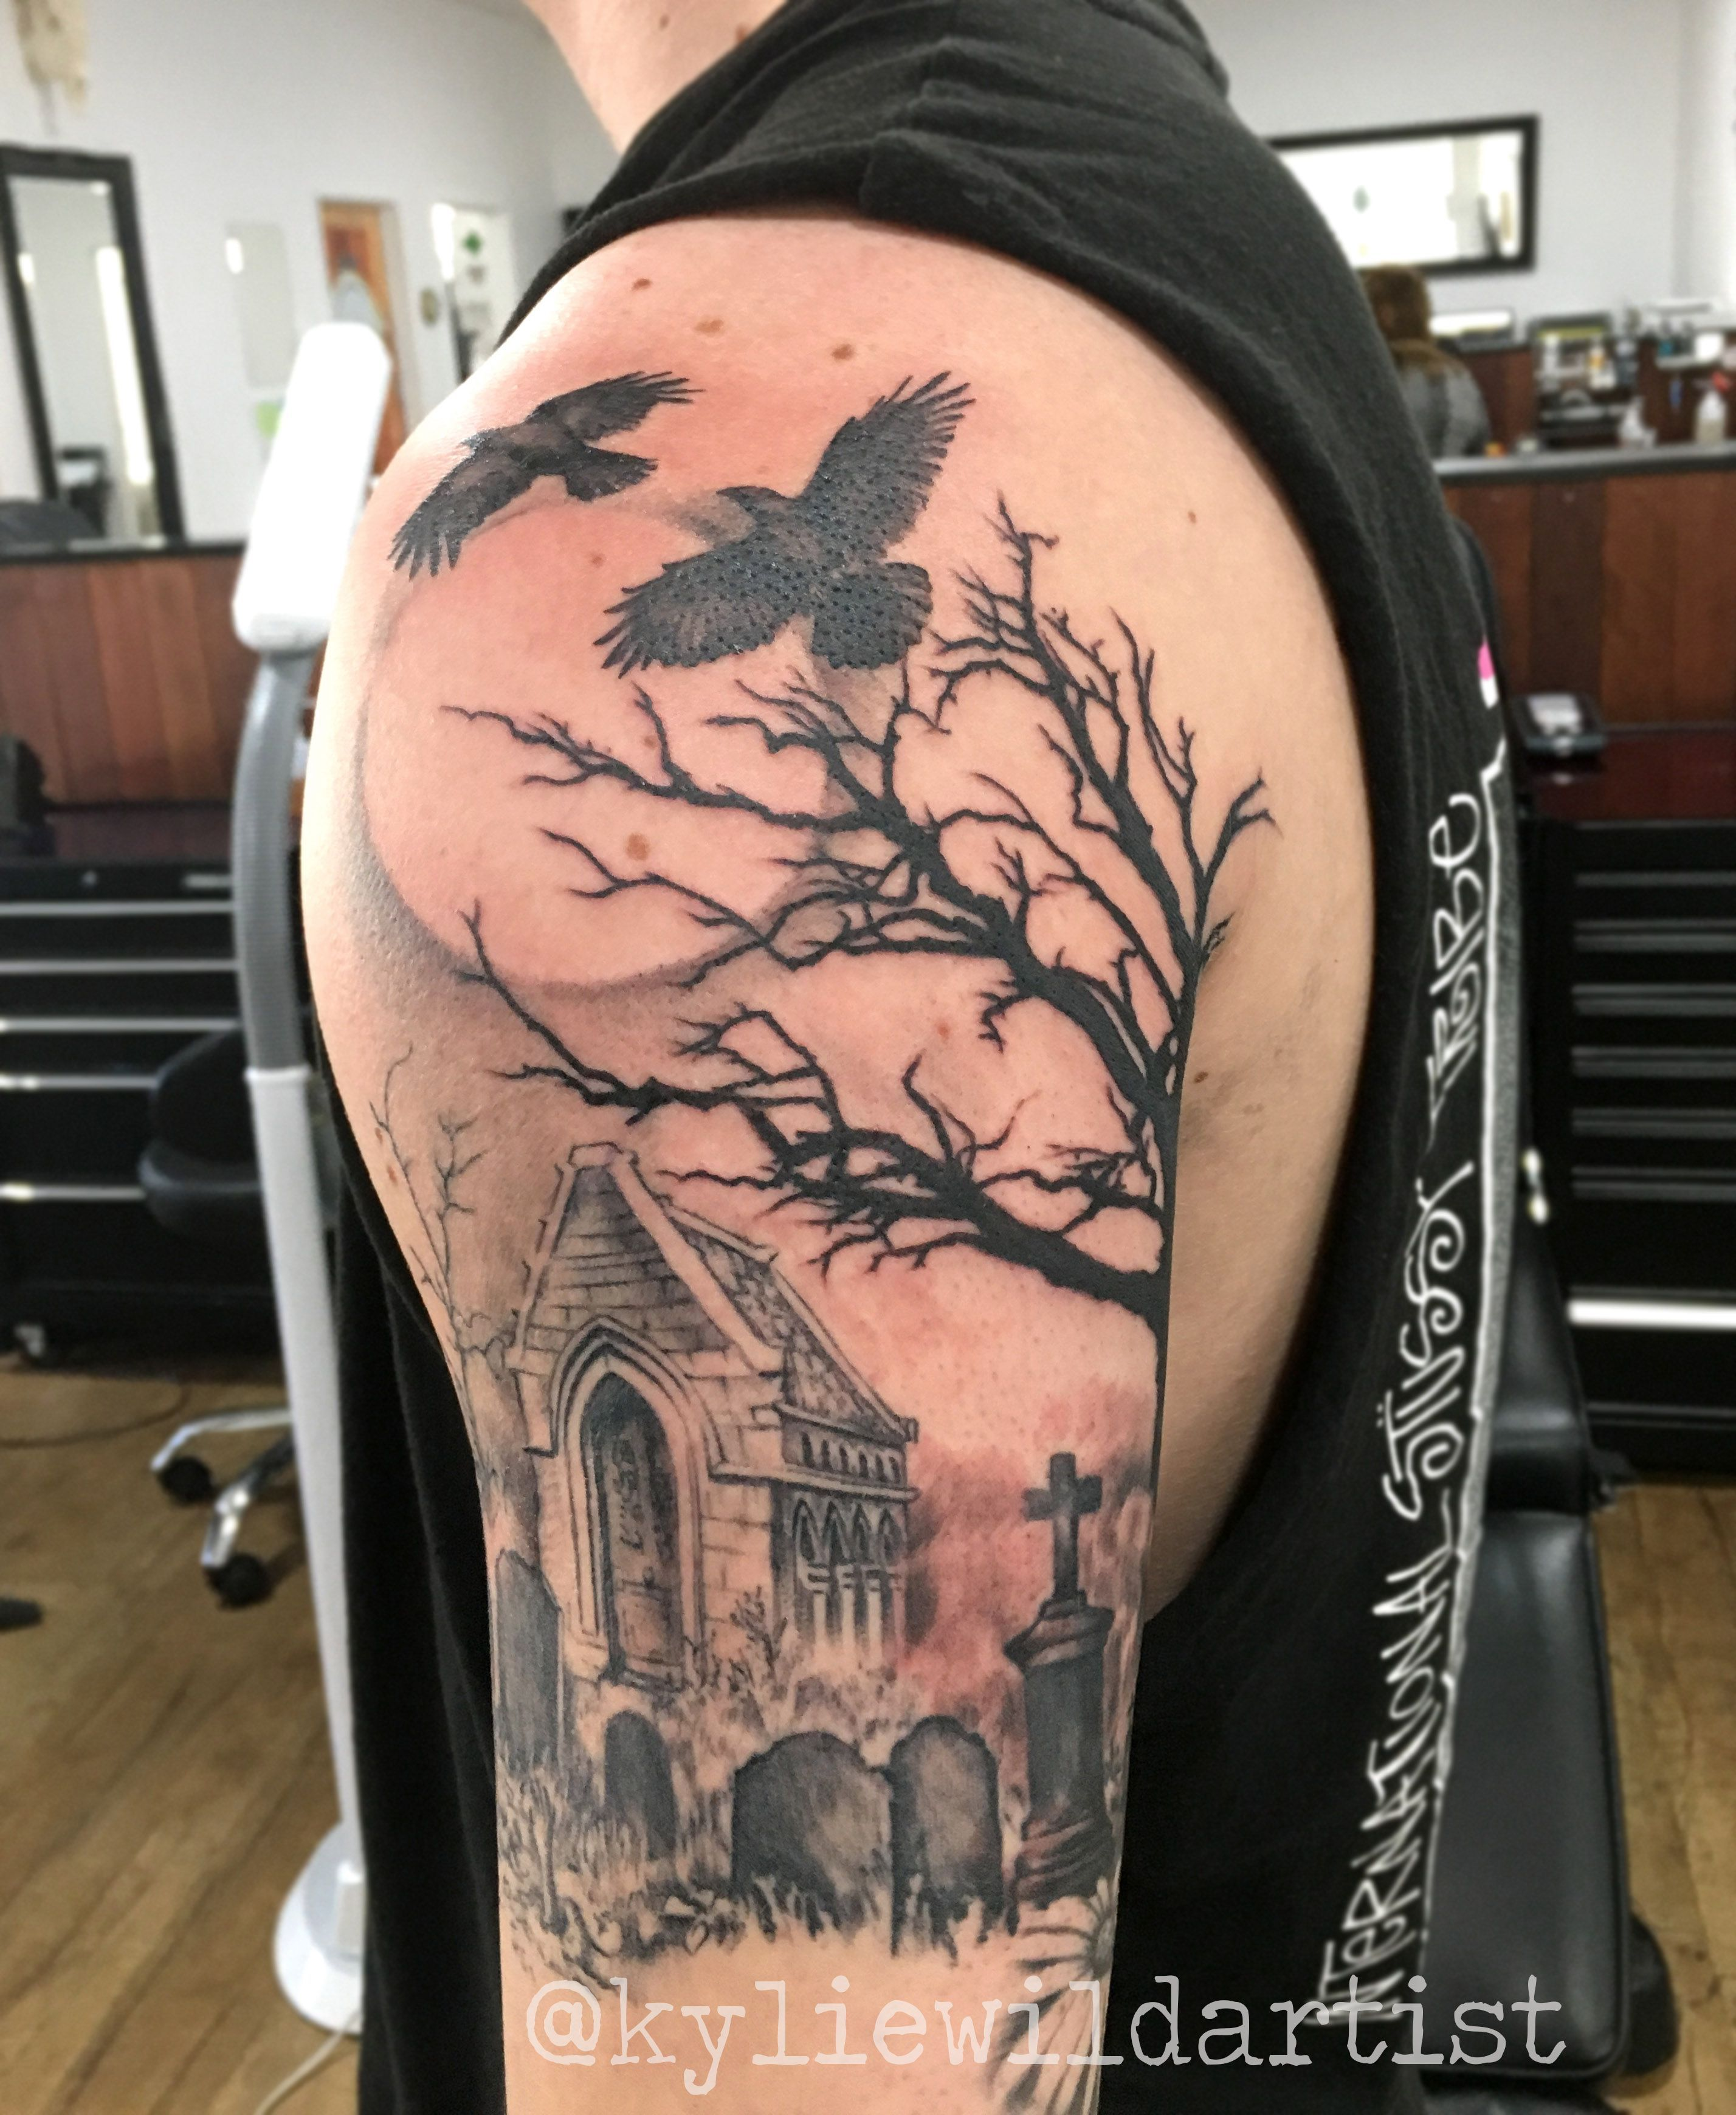 Graveyard Tree Crows Moon Tombstones Tattoo Sleeve In Progress By Kylie Wild Heslop Canberra Australia Based Tattoo Scary Tattoos Tattoos Sleeve Tattoos